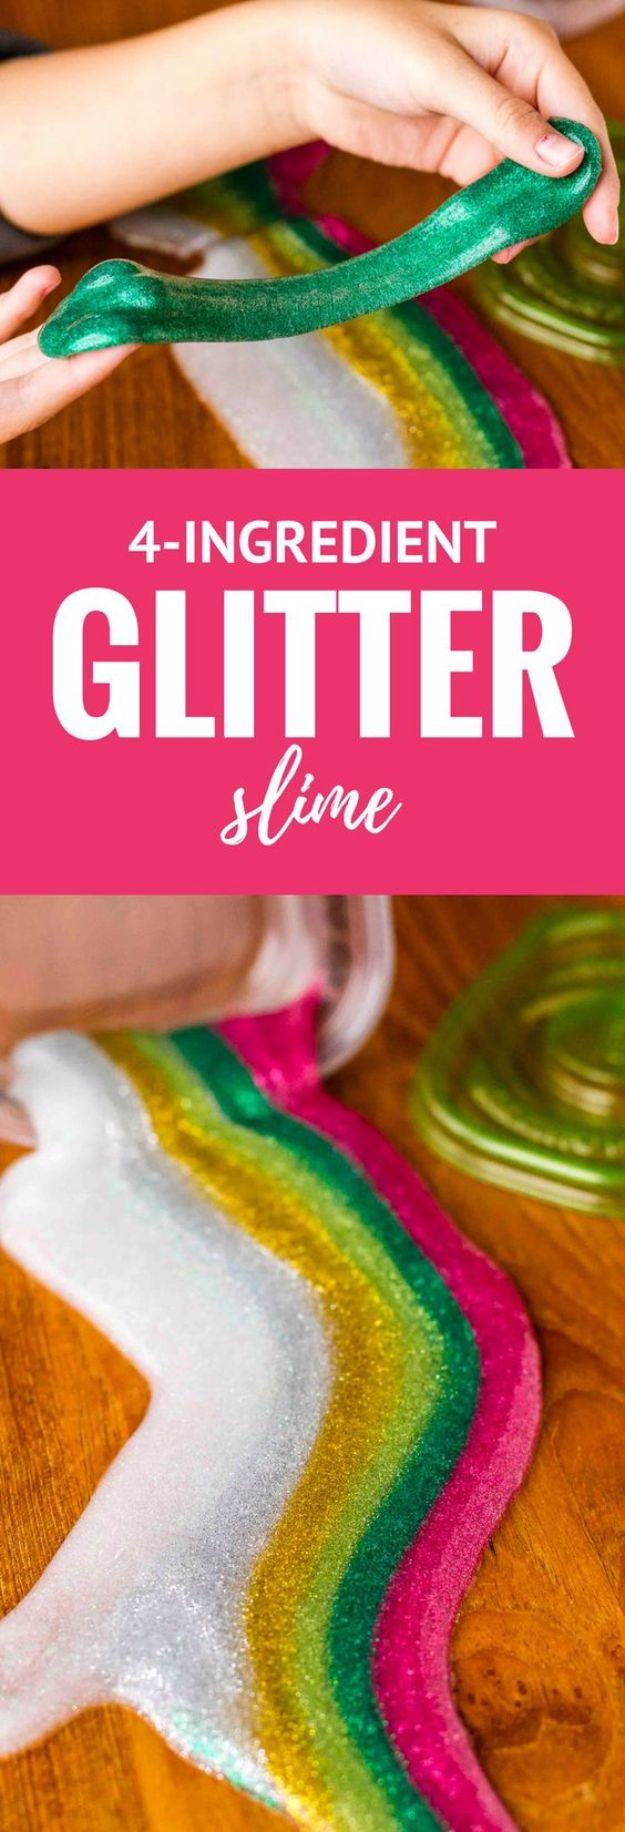 Borax Free Slime Recipes - 4-Ingredient Glitter Slime - Safe Slimes To Make Without Glue - How To Make Fluffy Slime With Shaving Cream - Easy 3 Ingredients Glitter Slime, Clear, Galaxy, Best DIY Slime Tutorials With Step by Step Instructions http://diyprojectsforteens.com/borax-free-slime